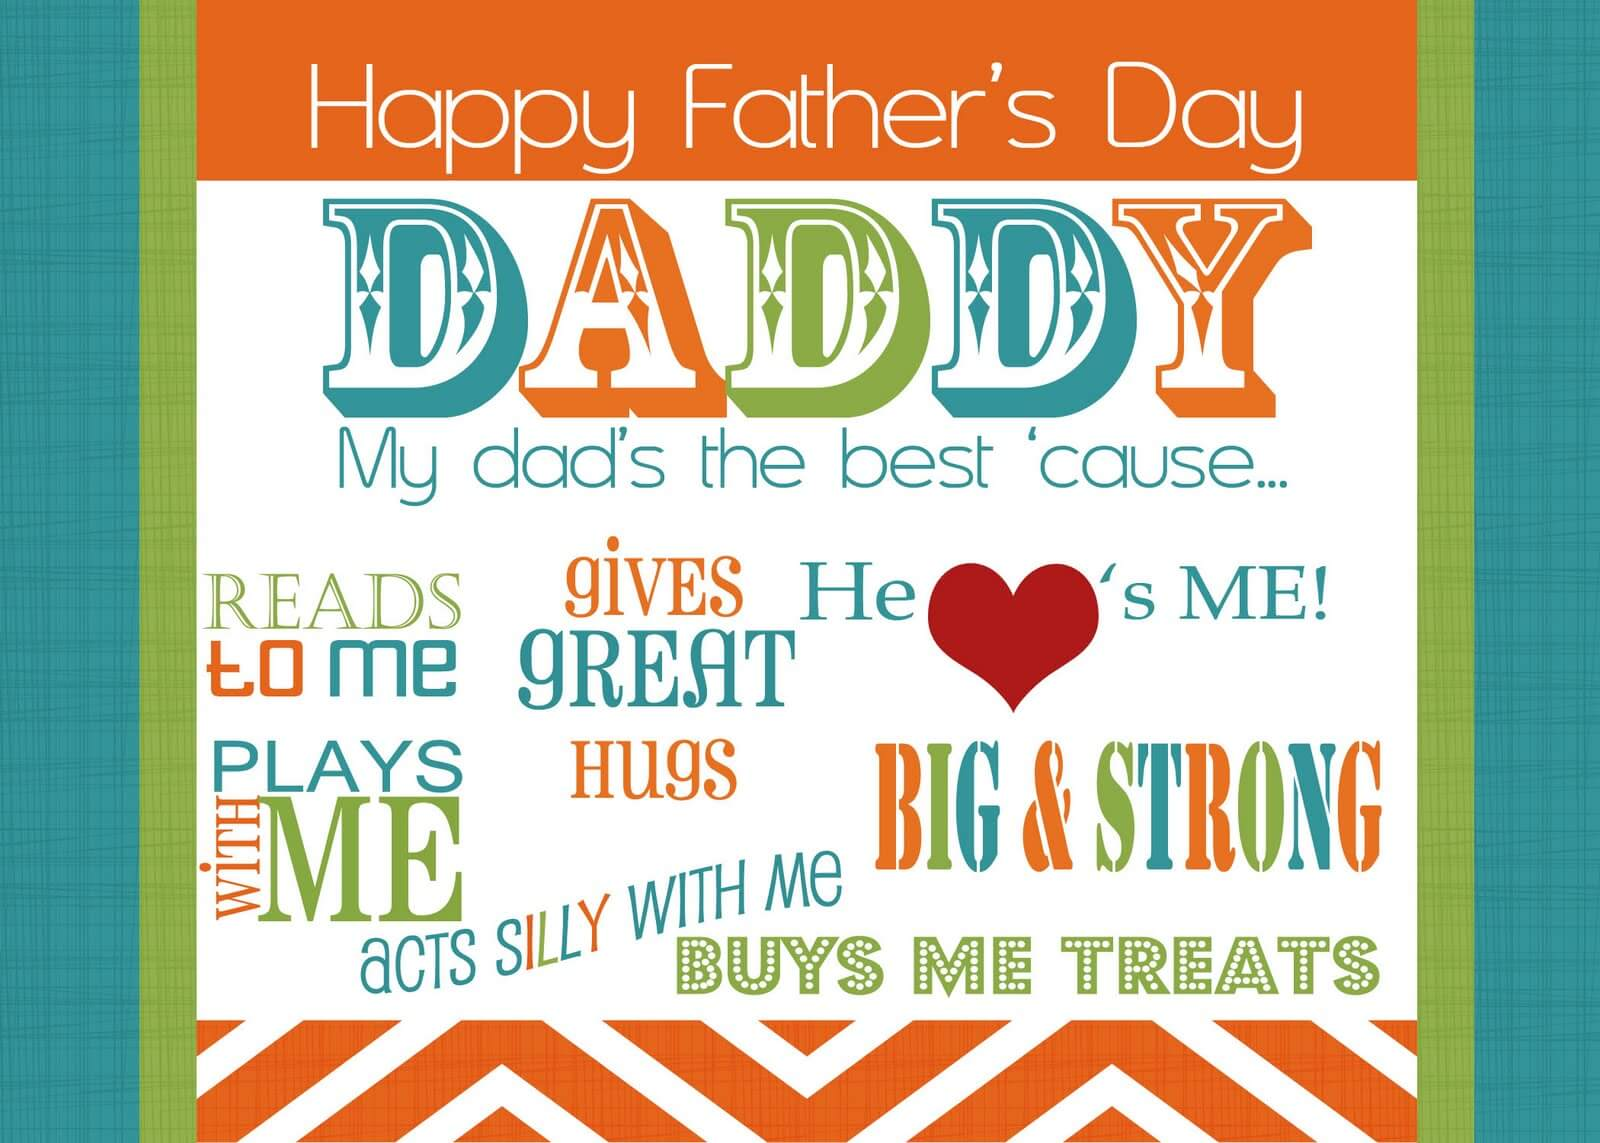 happy fathers day wallpapers images HD beautiful greeting cards